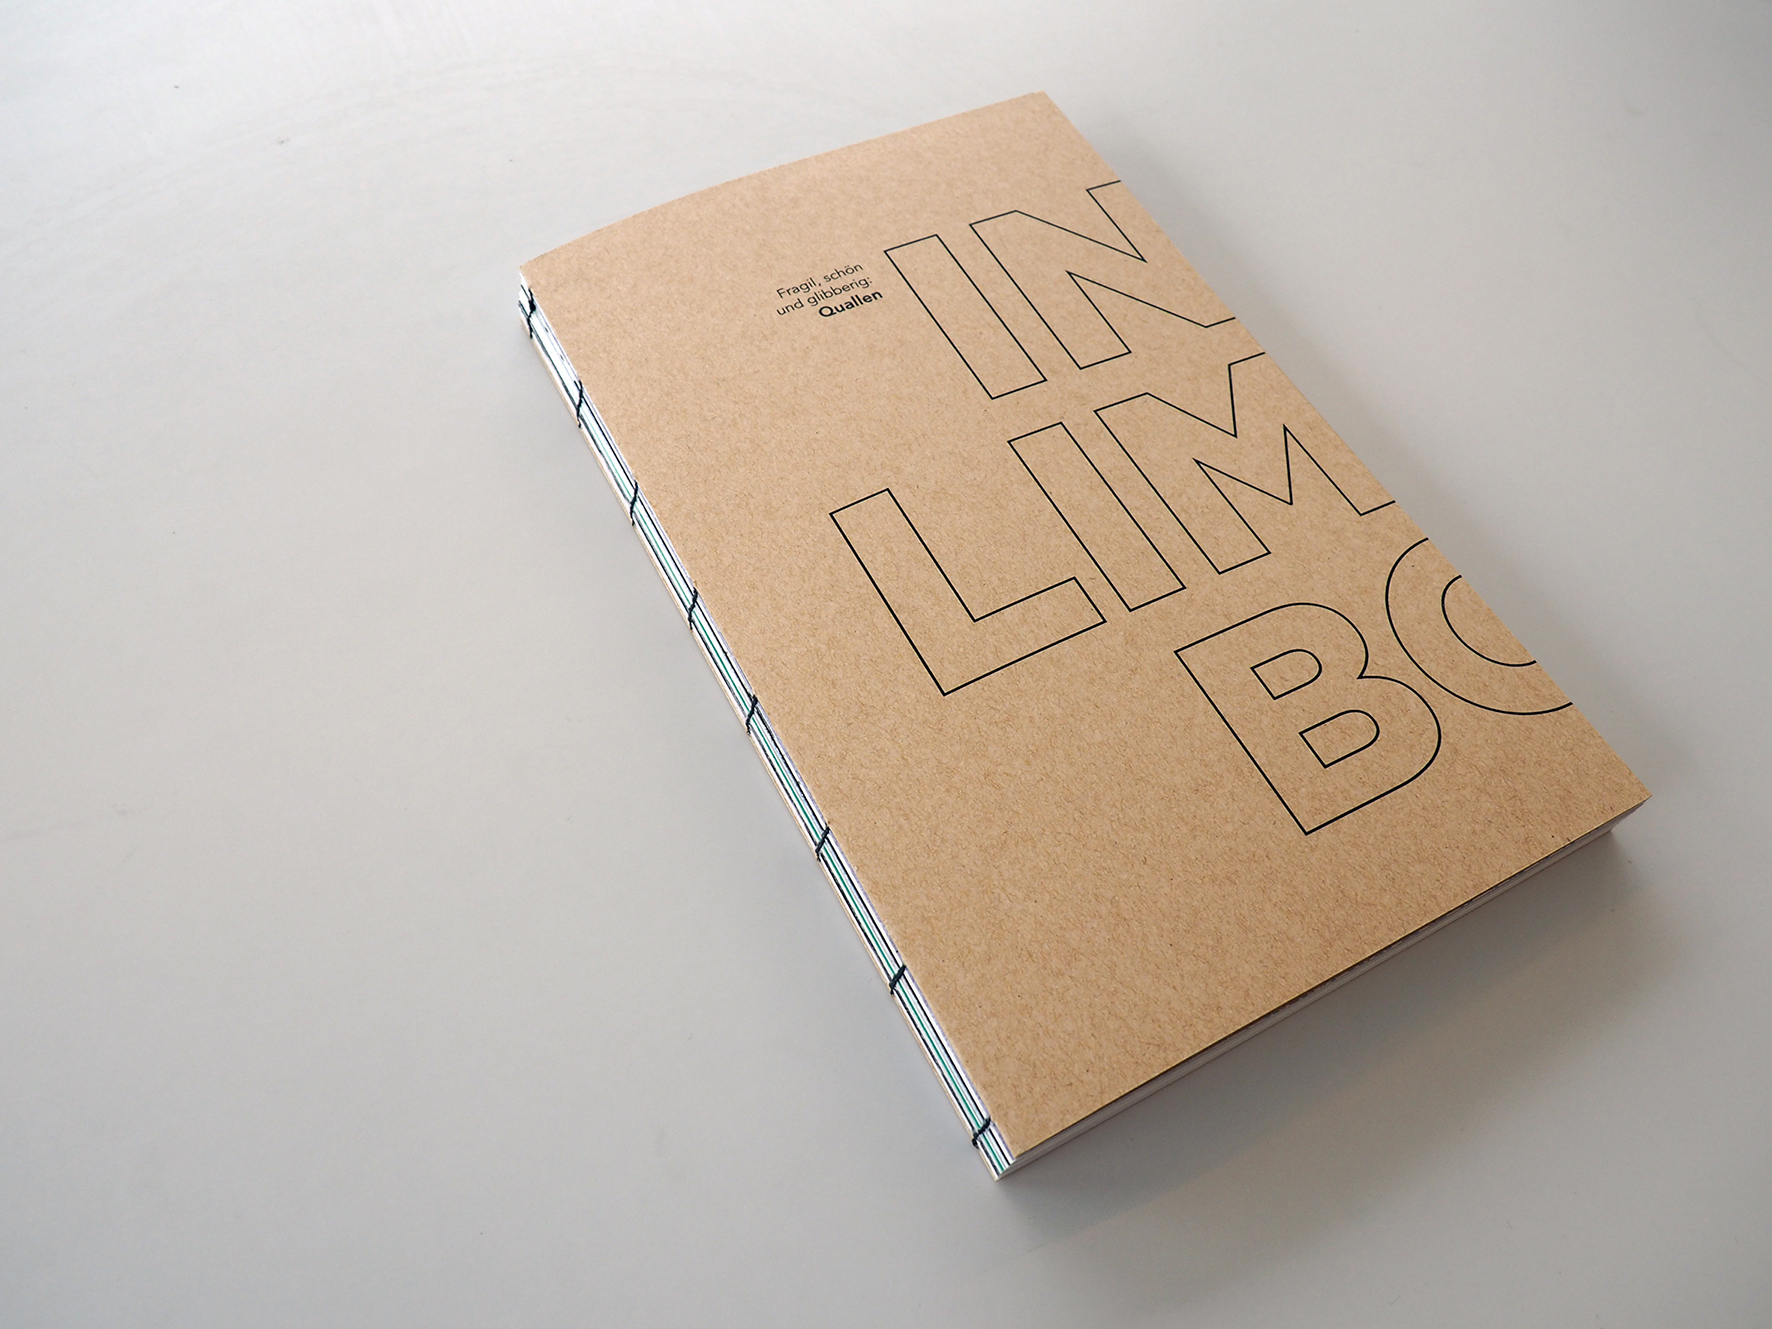 Publikation: In Limbo